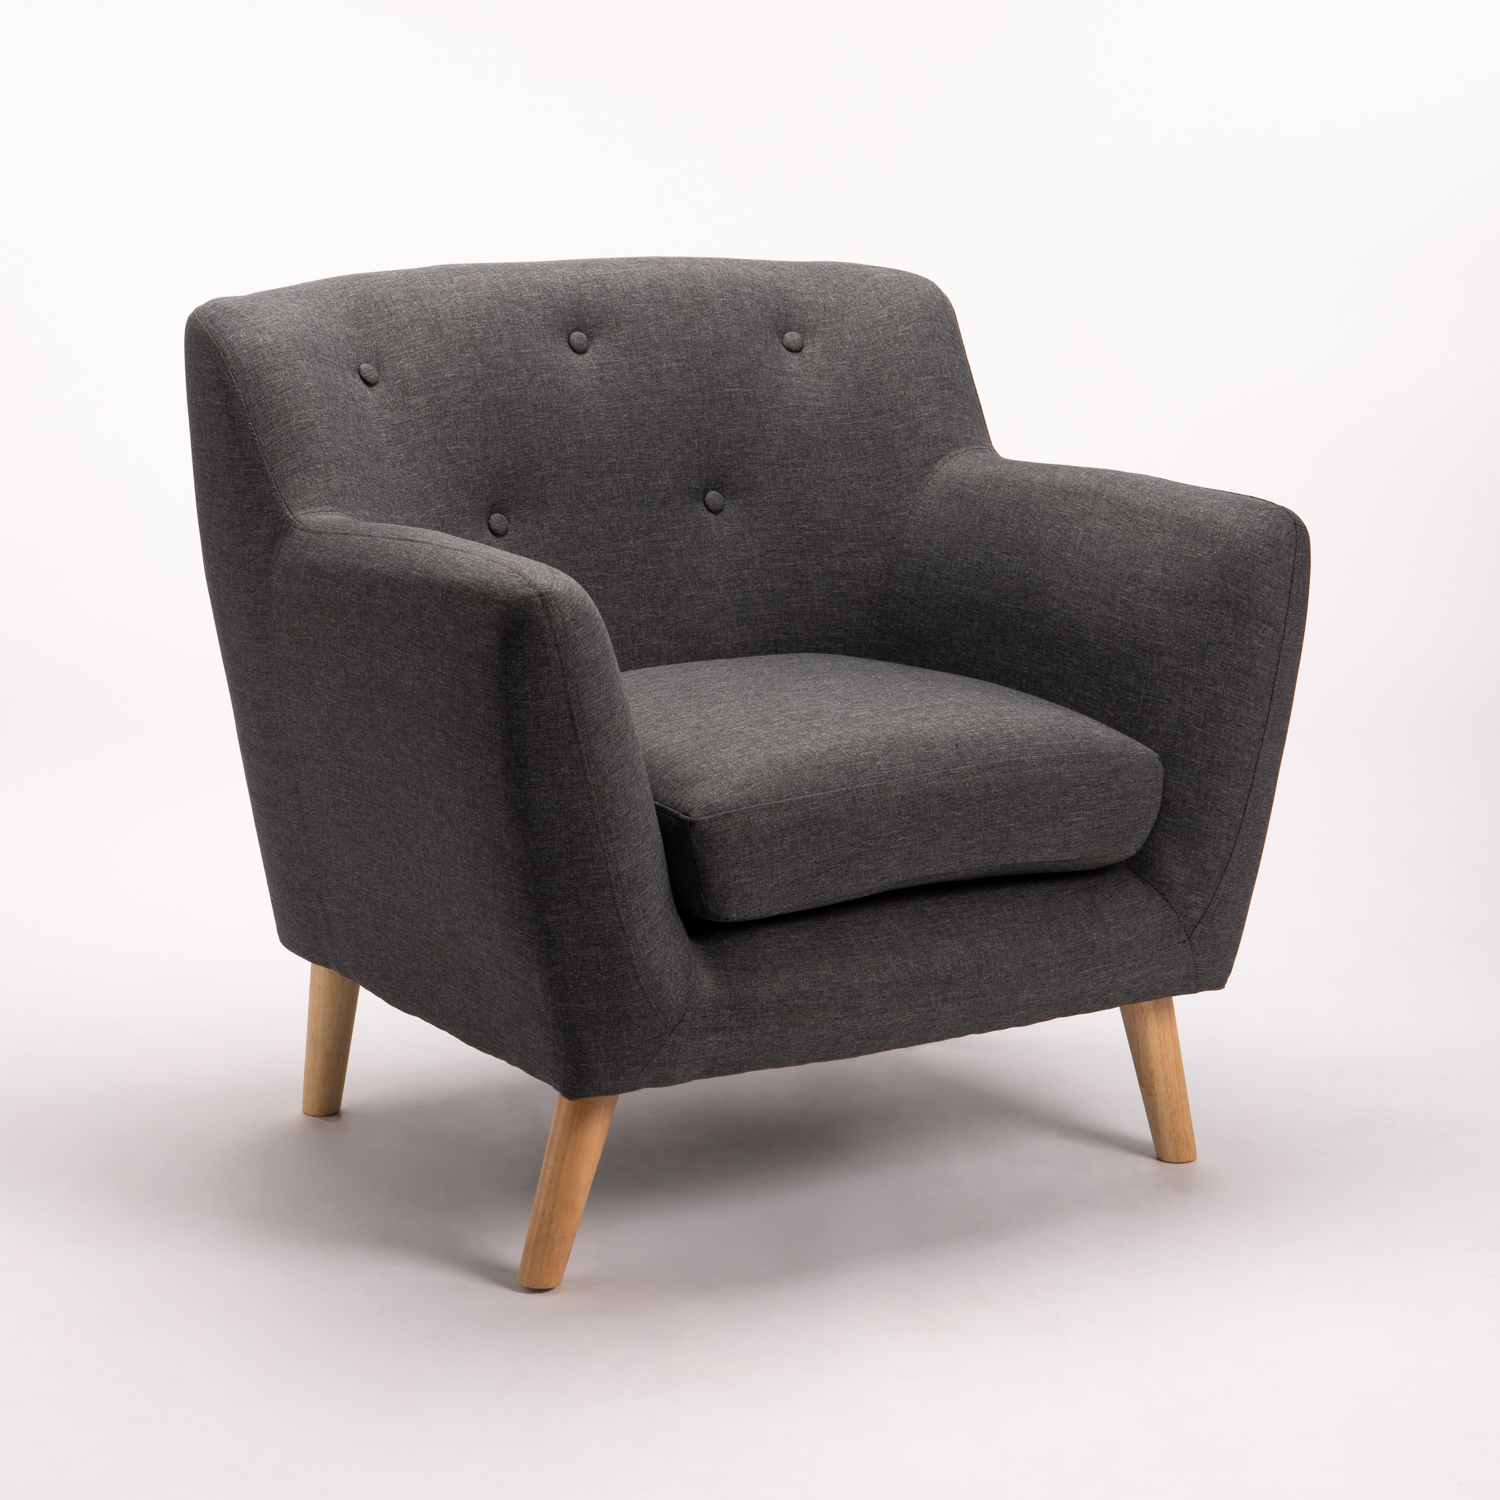 Decofurn Furniture Emma Fabric Armchair